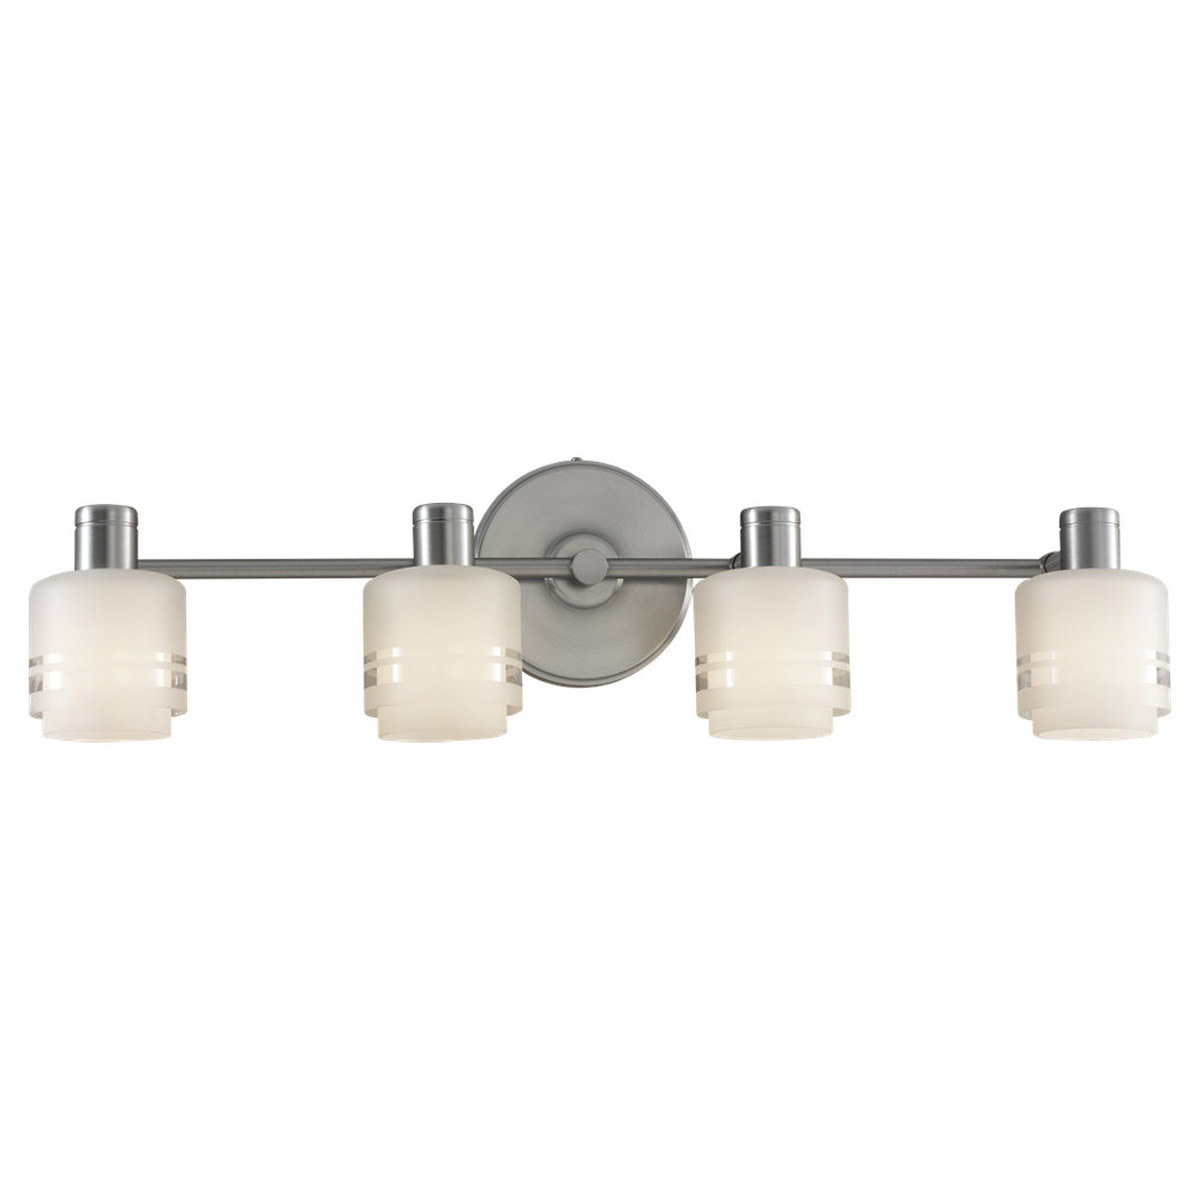 Sea Gull Lighting Groove 4 Light Wall / Bath / Vanity in Brushed Chrome 44733-863 photo